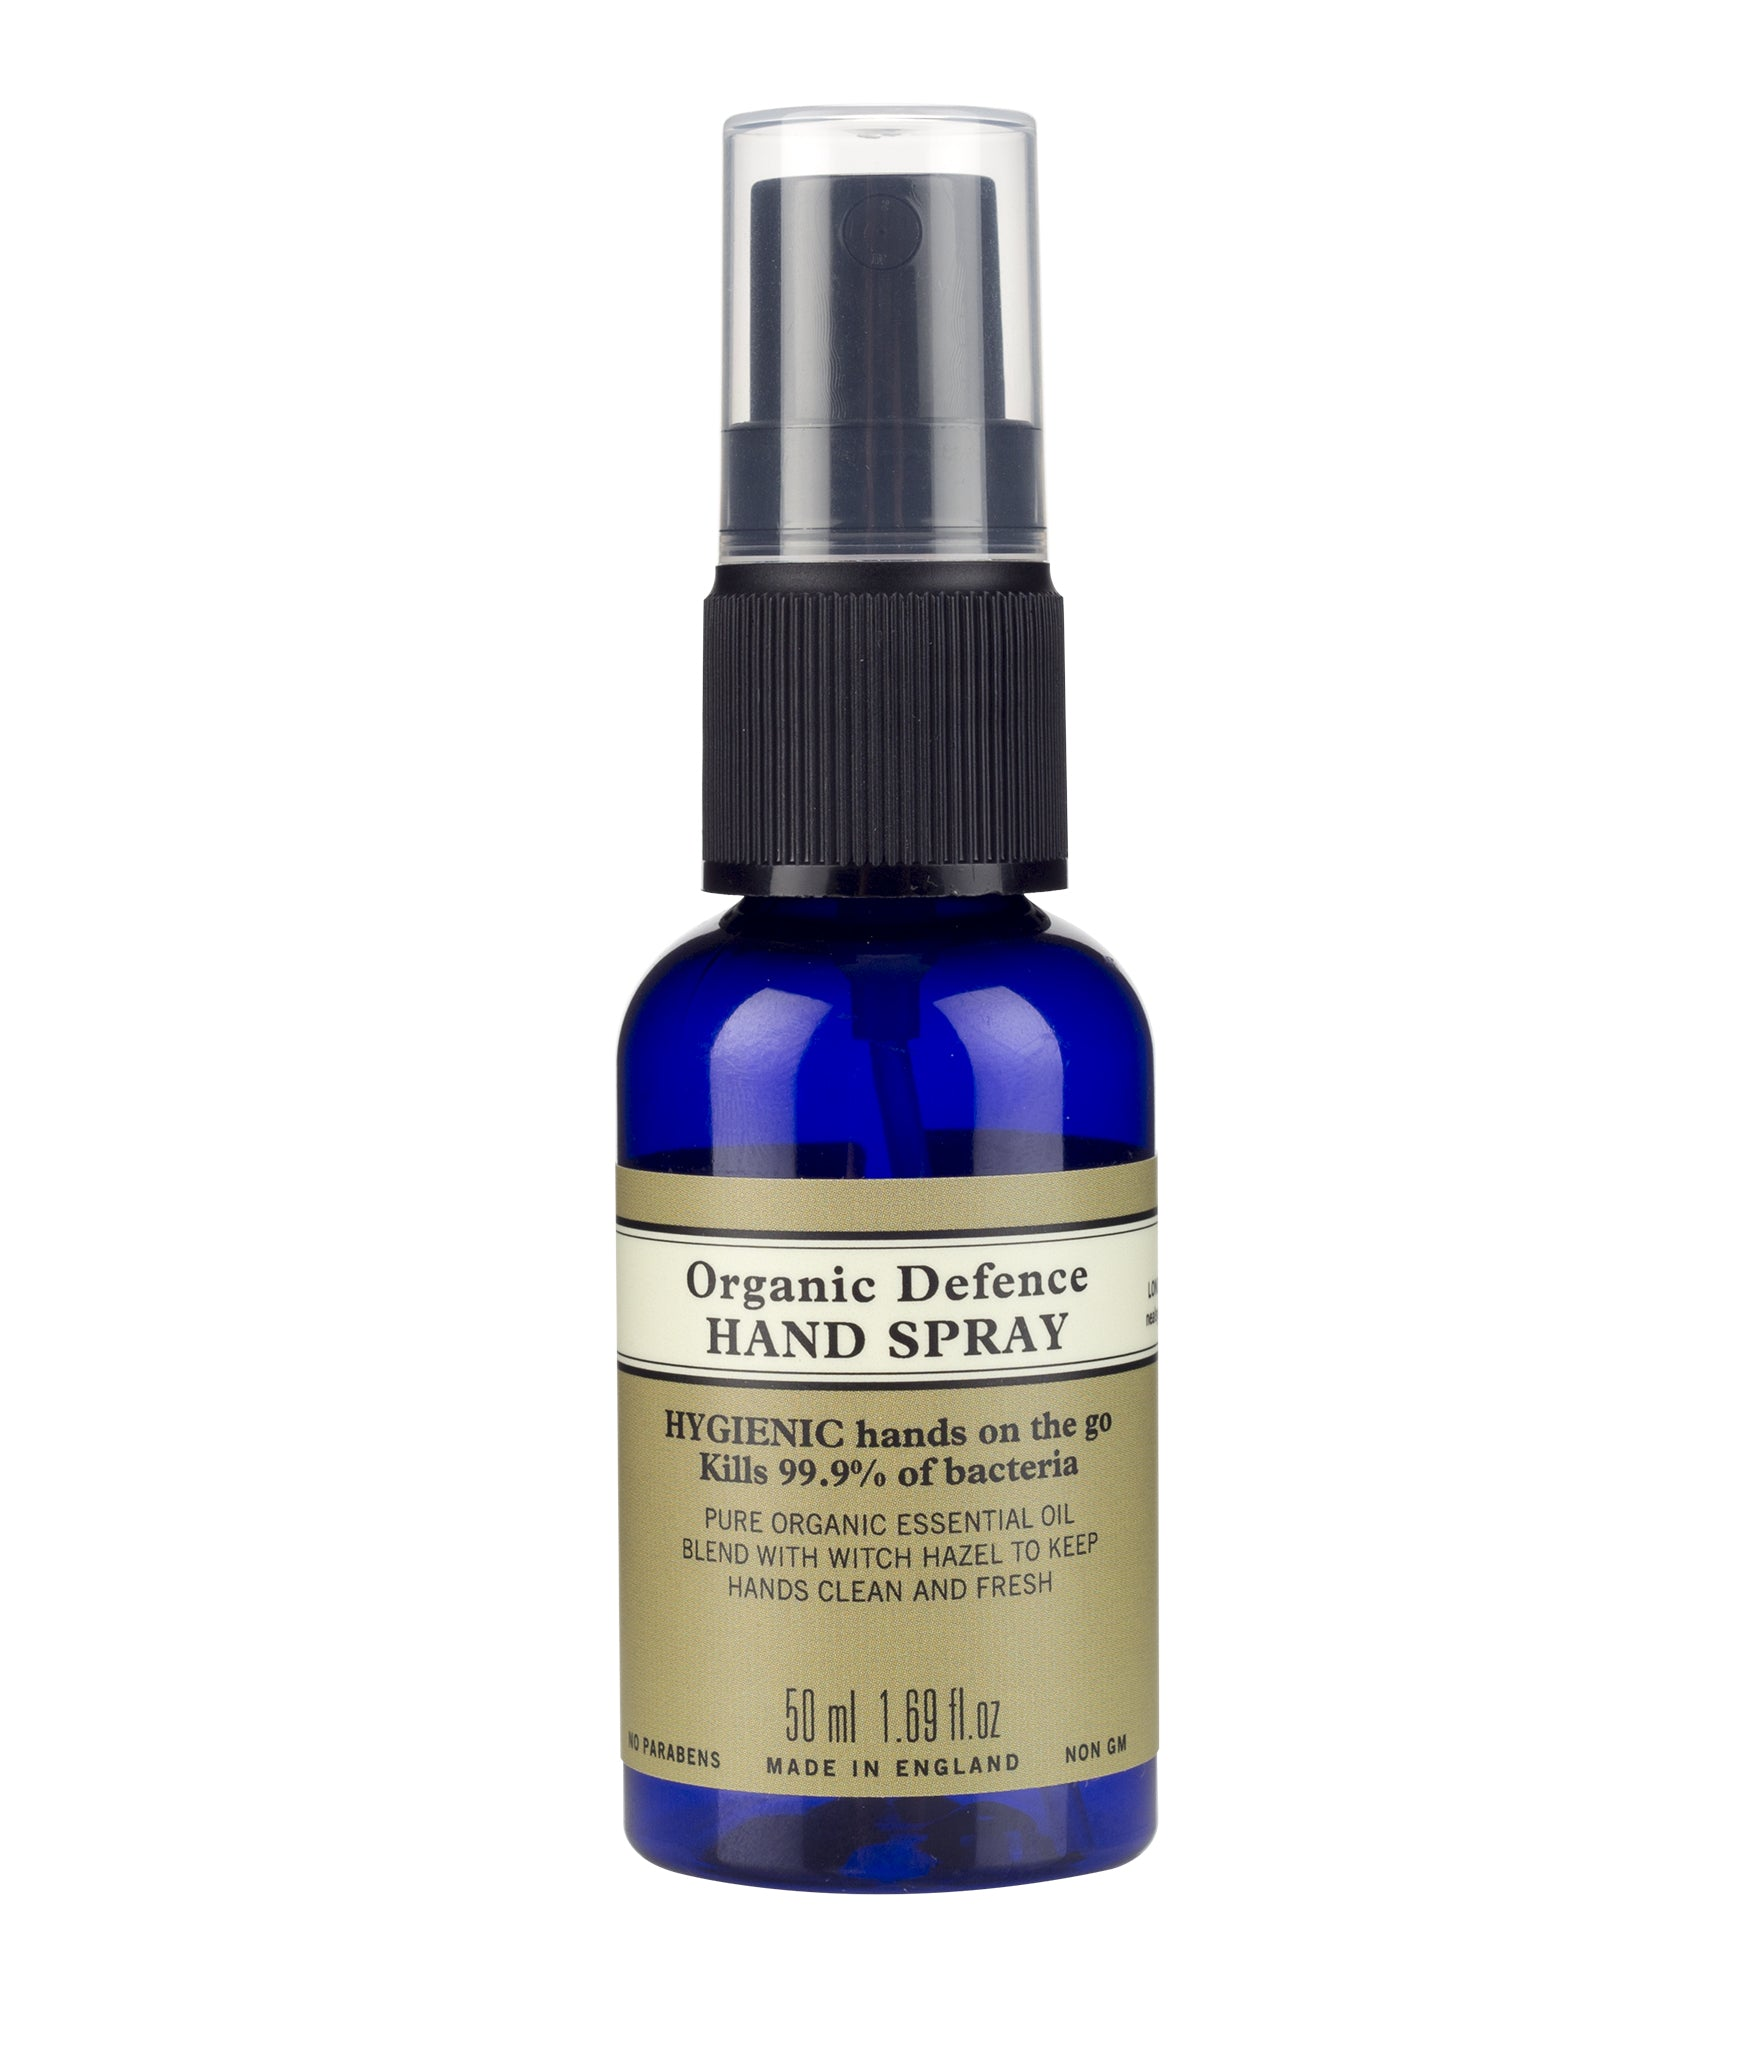 Organic Defence Hand Spray by Neal's Yard Remedies